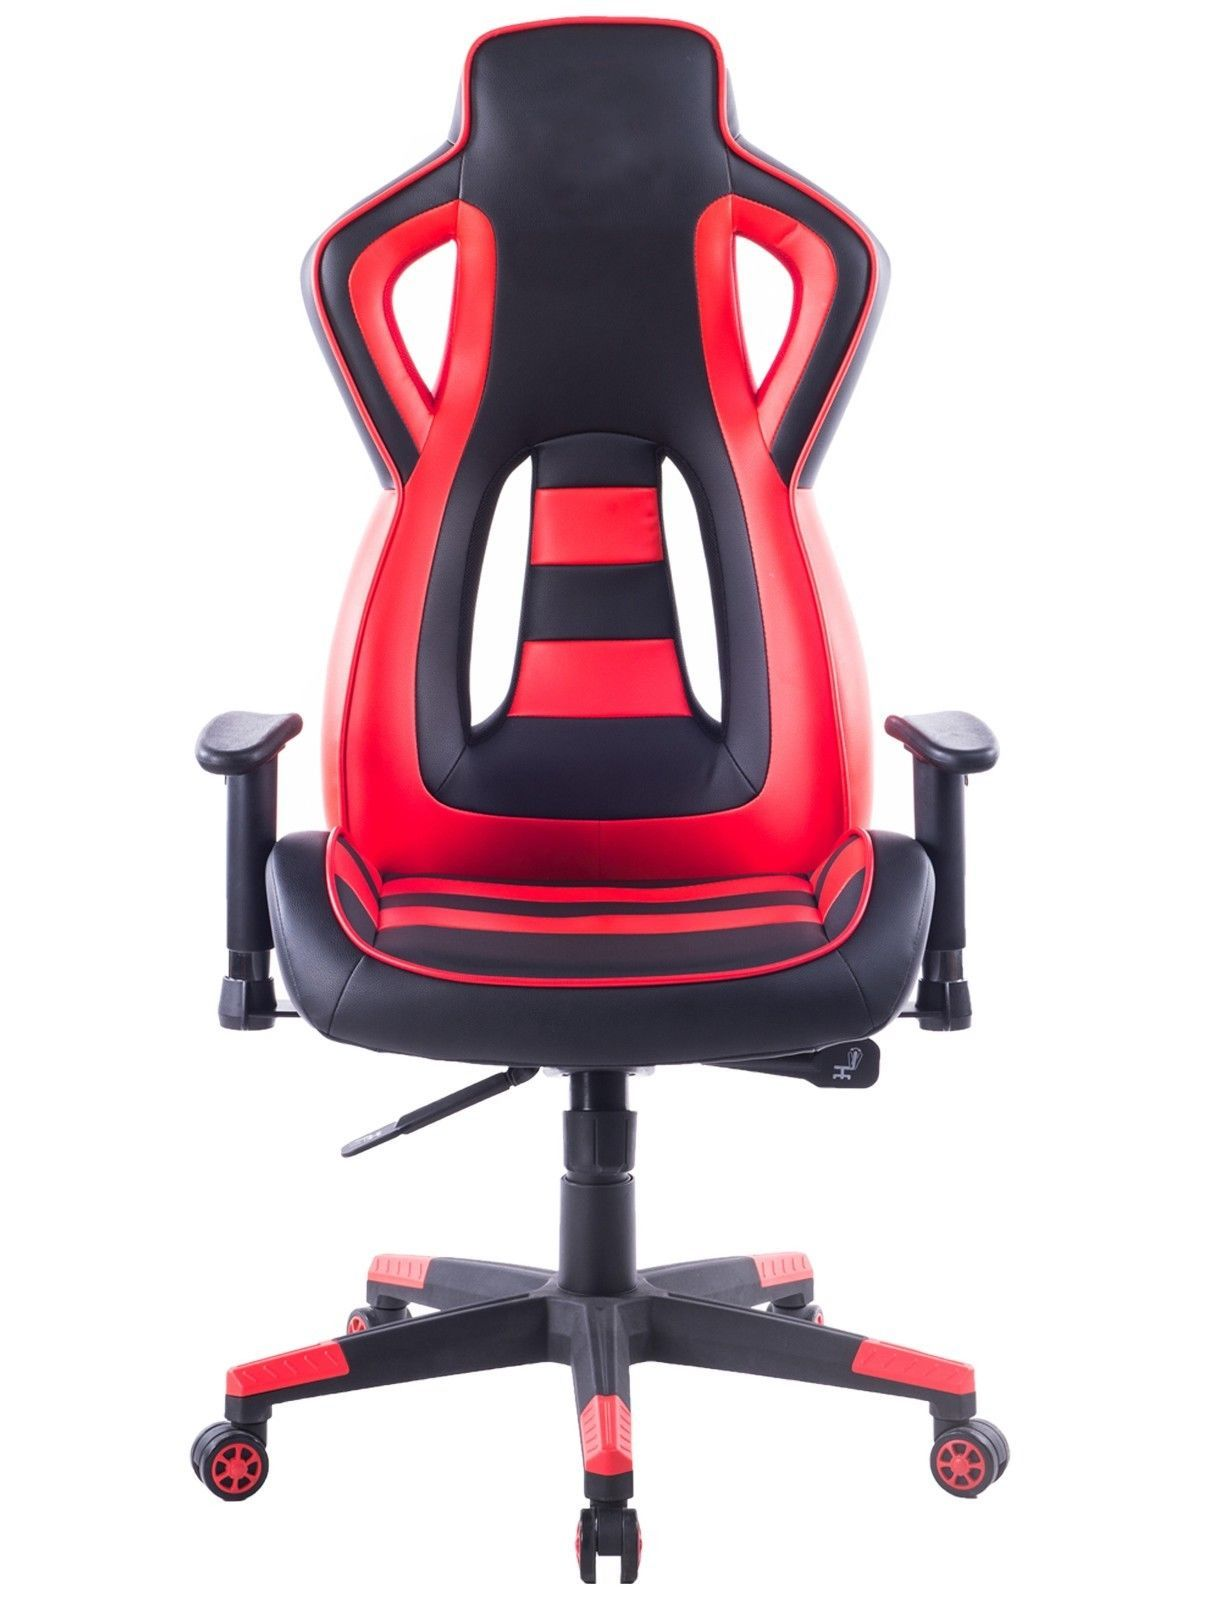 Excellent Killbee Swivel Reclining Racing Style Gaming Chair Pvc Pdpeps Interior Chair Design Pdpepsorg